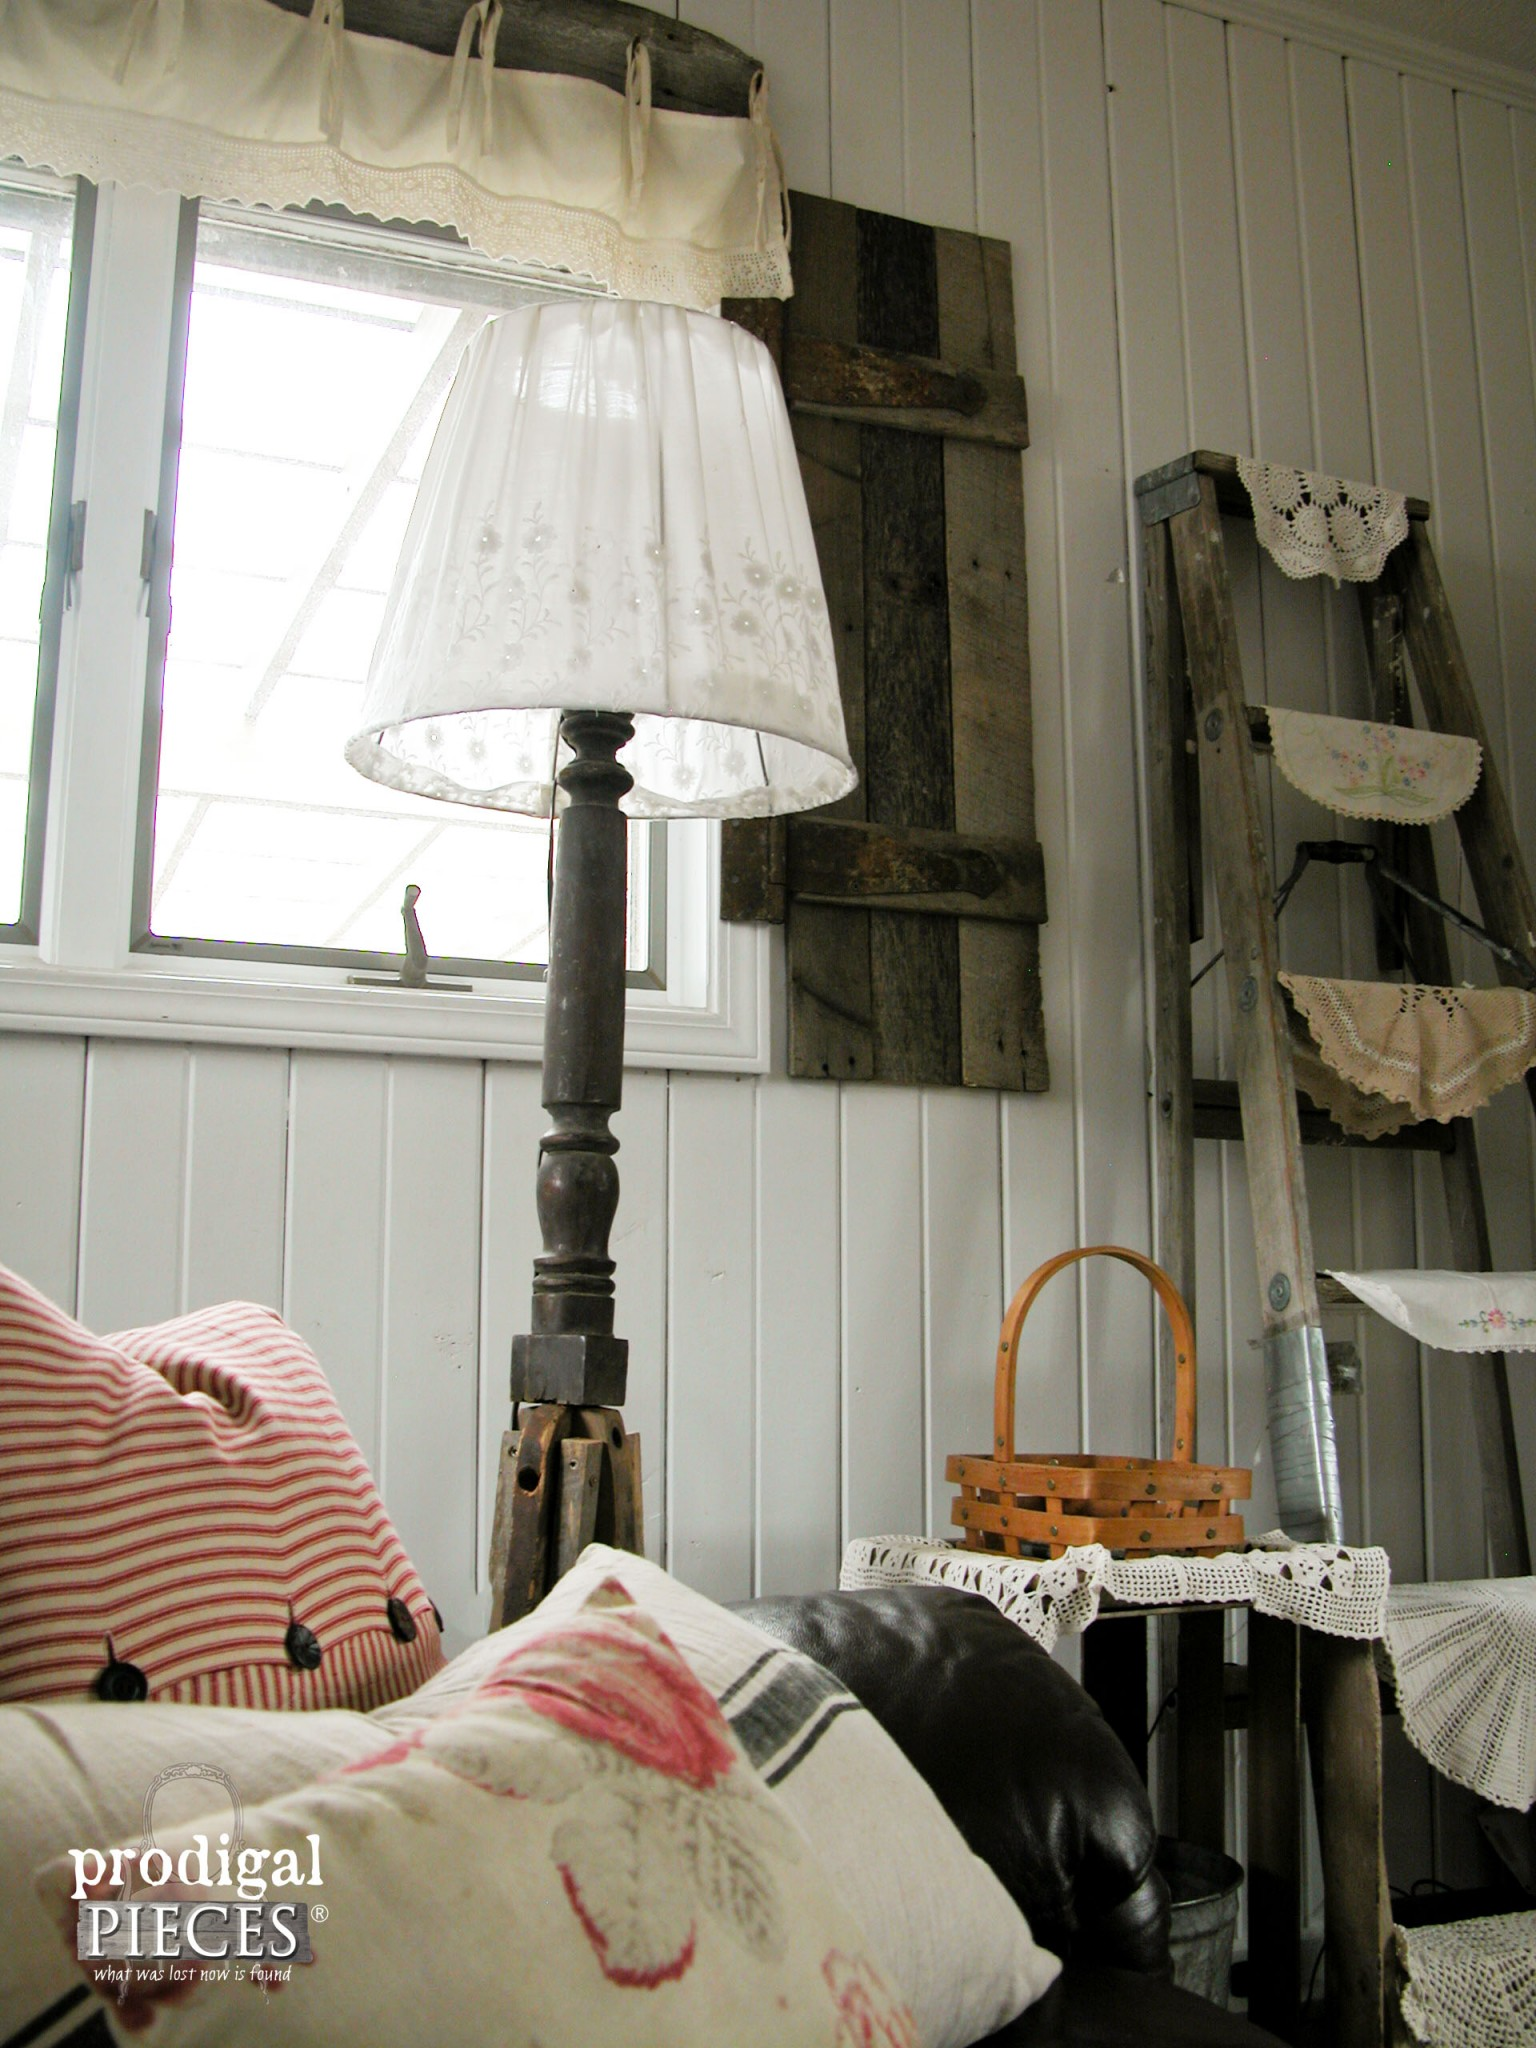 Rustic Floor Lamp from Repurposed Antiques | Prodigal Pieces | www.prodigalpieces.com